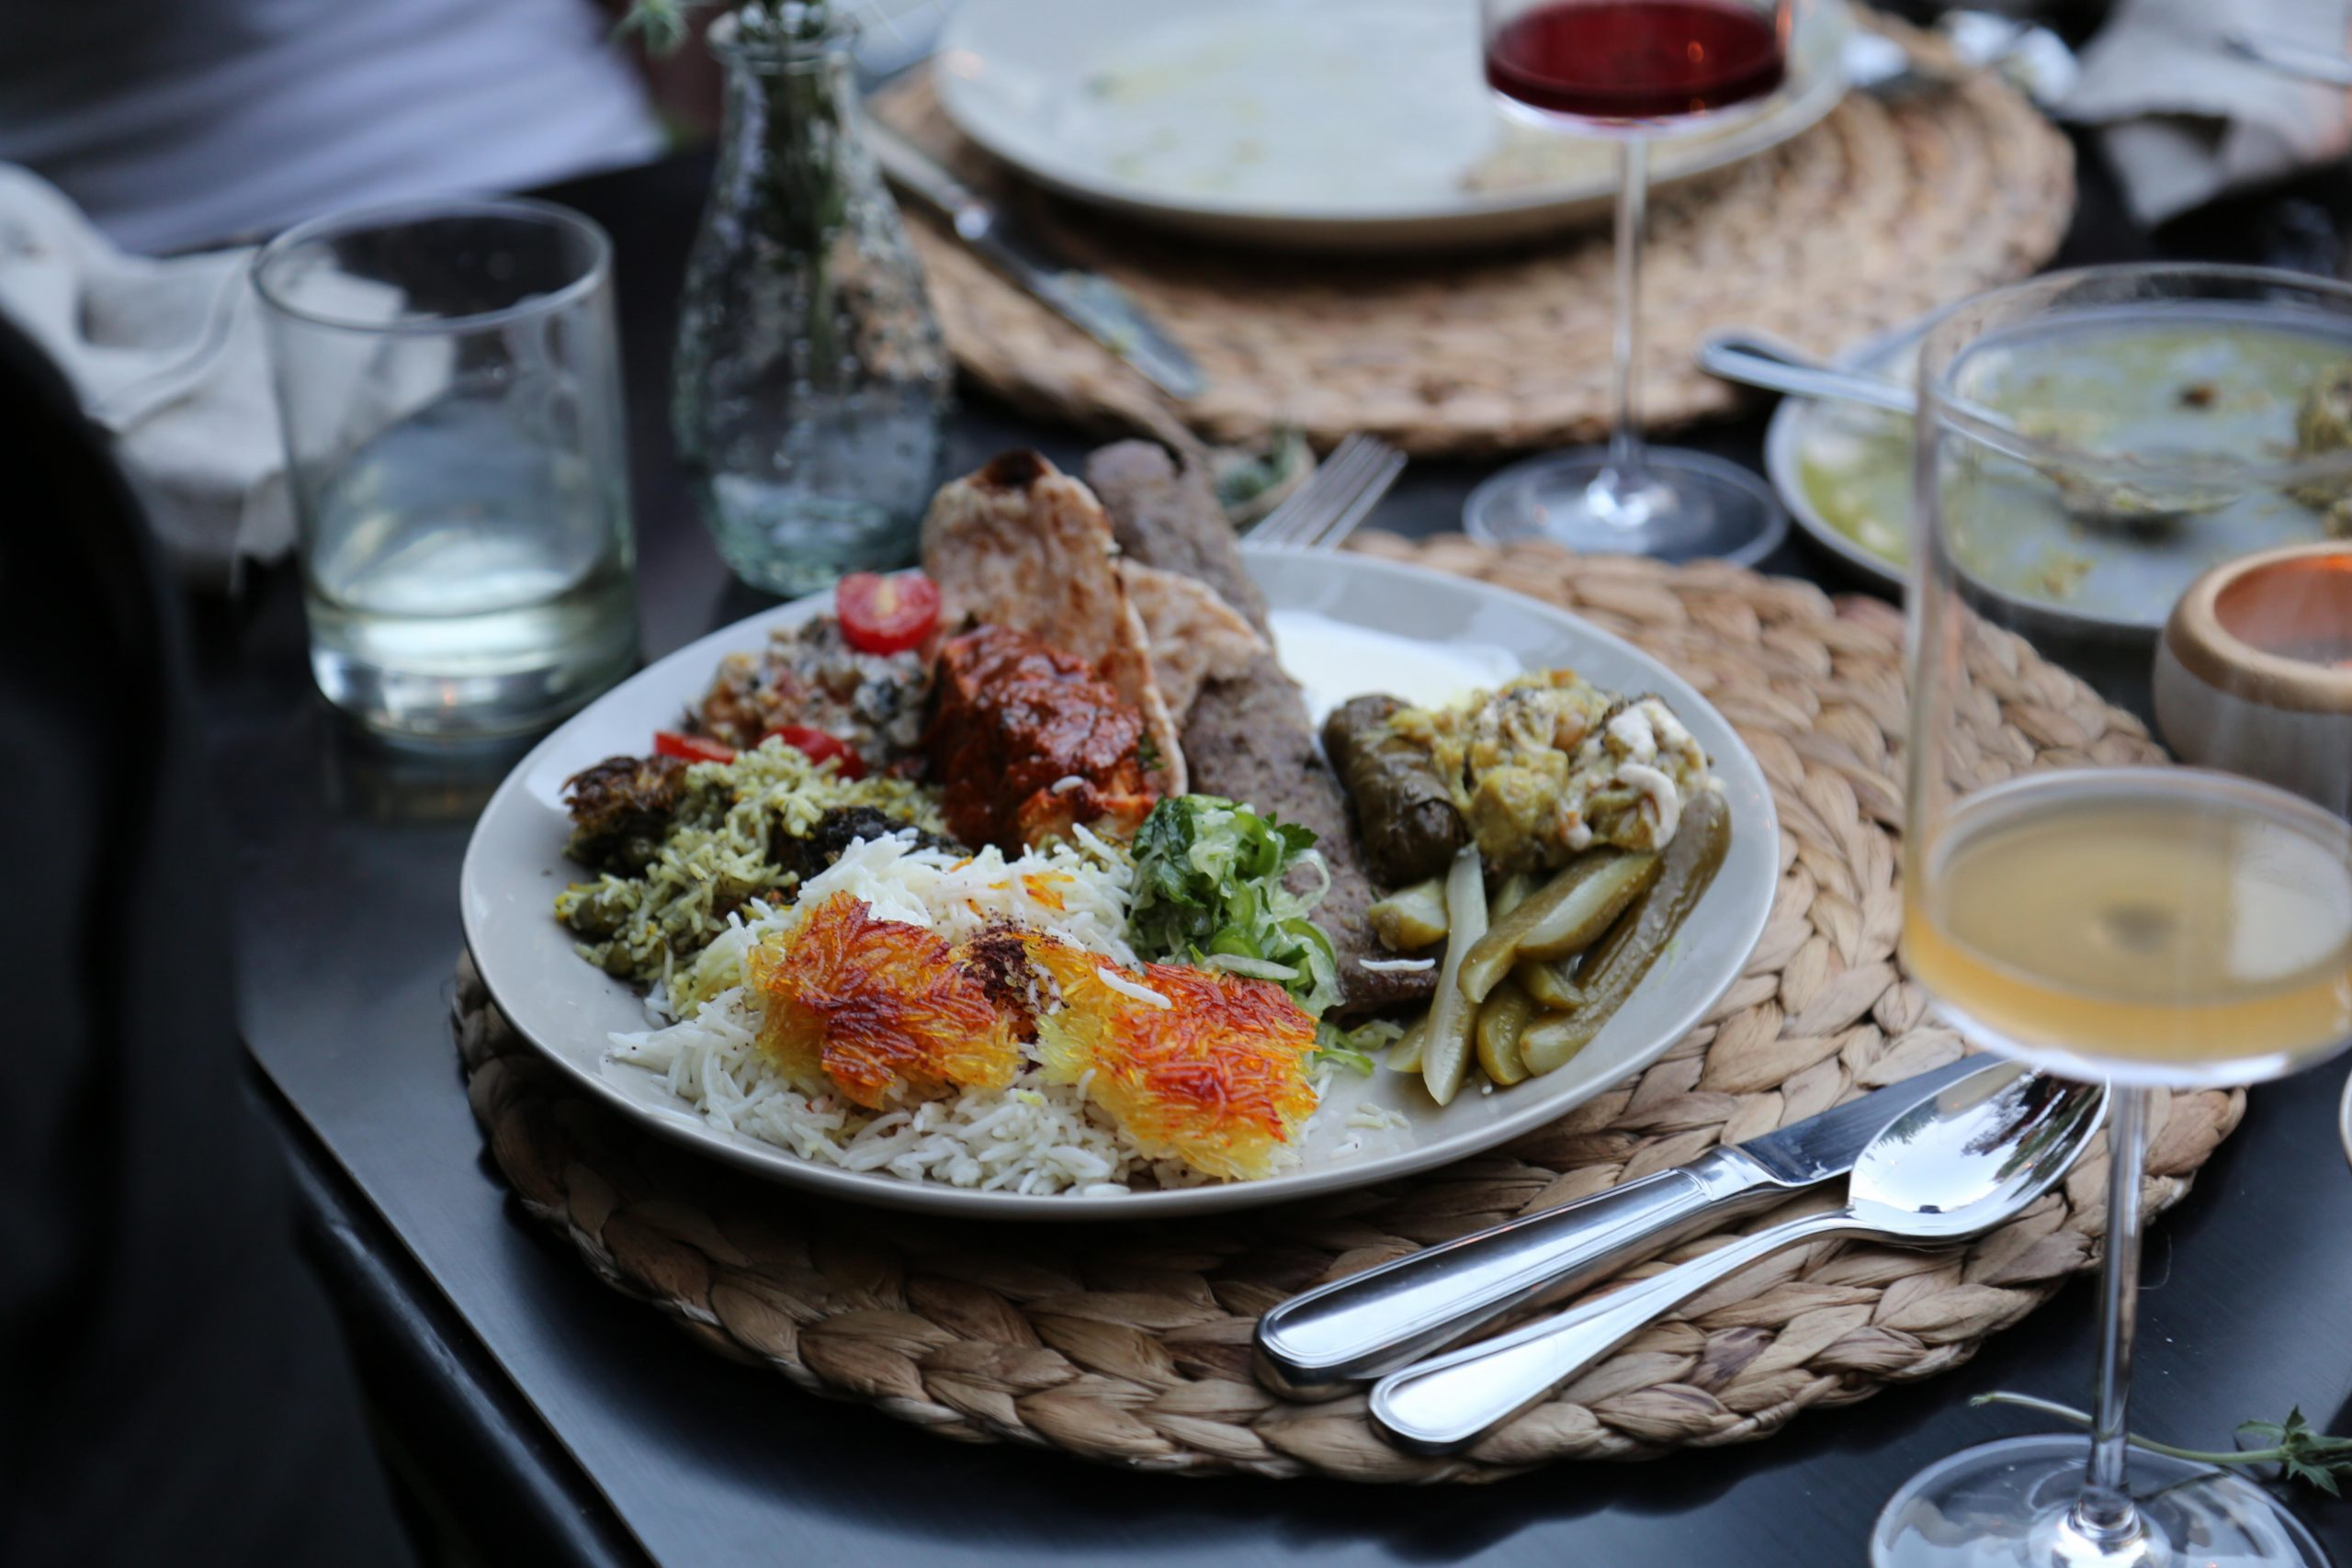 'Taste the Nation' season 1 review: Enlightening glimpses into immigrants through food